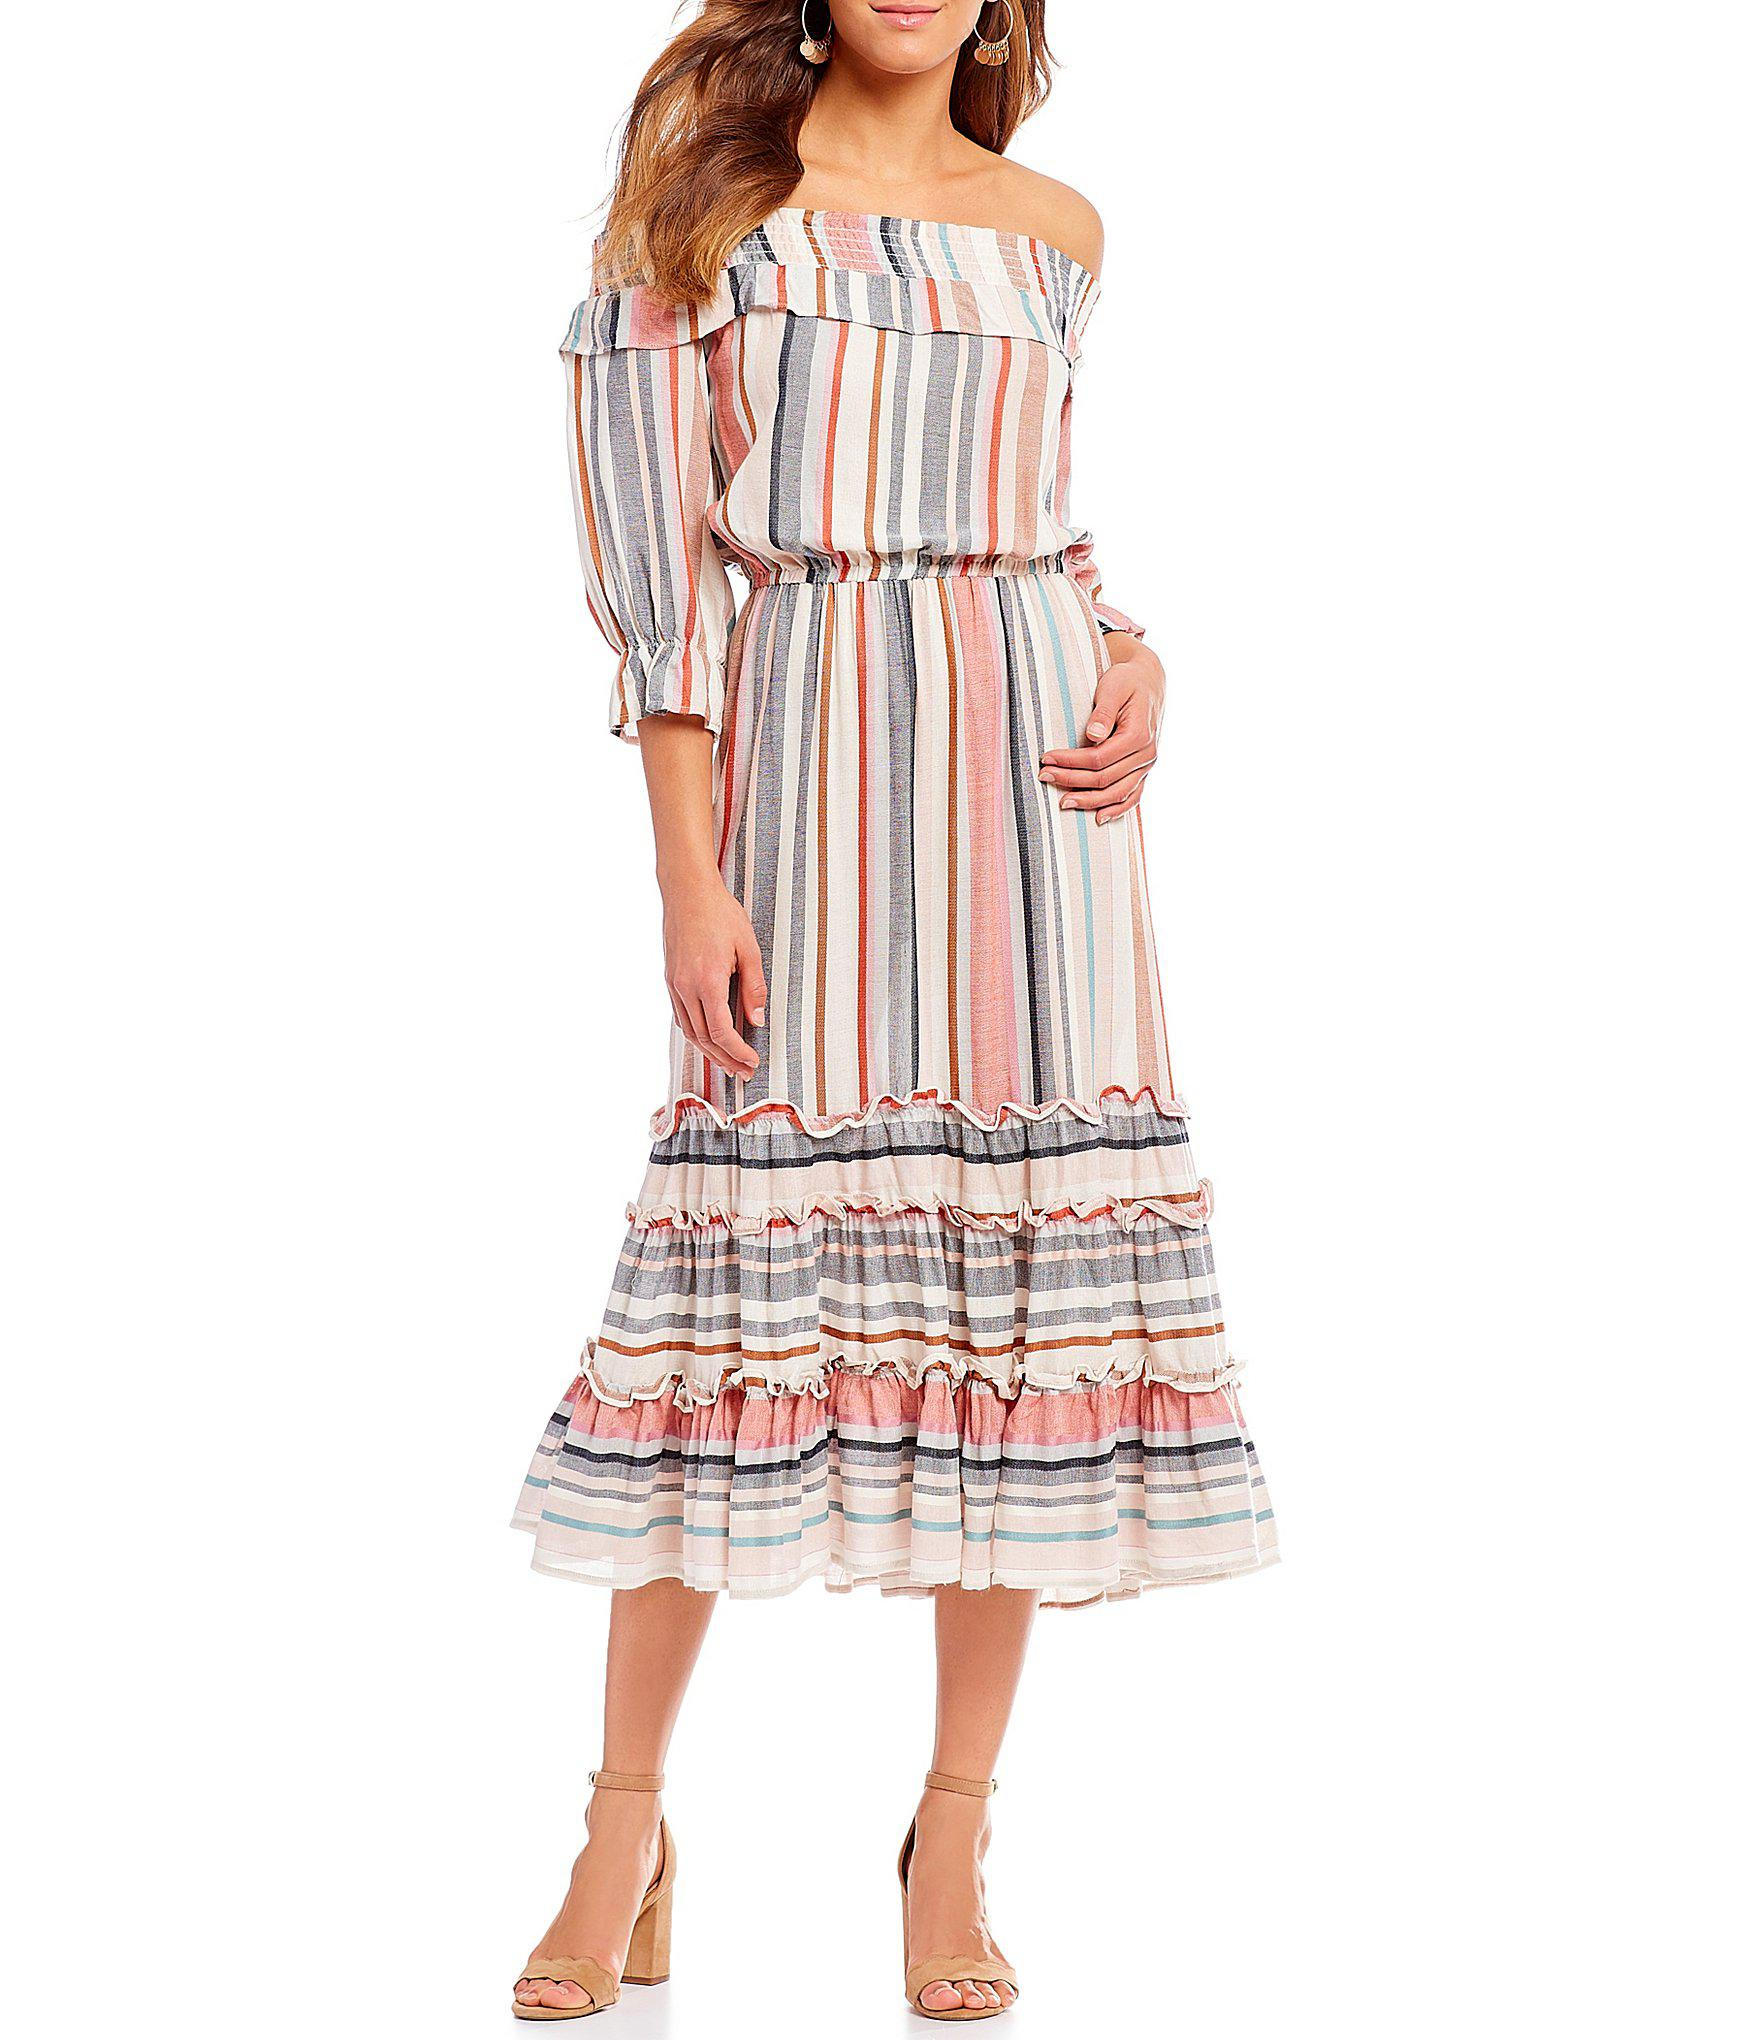 787bddb3869 Gallery. Previously sold at  Dillard s · Women s Off The Shoulder Dresses  ...